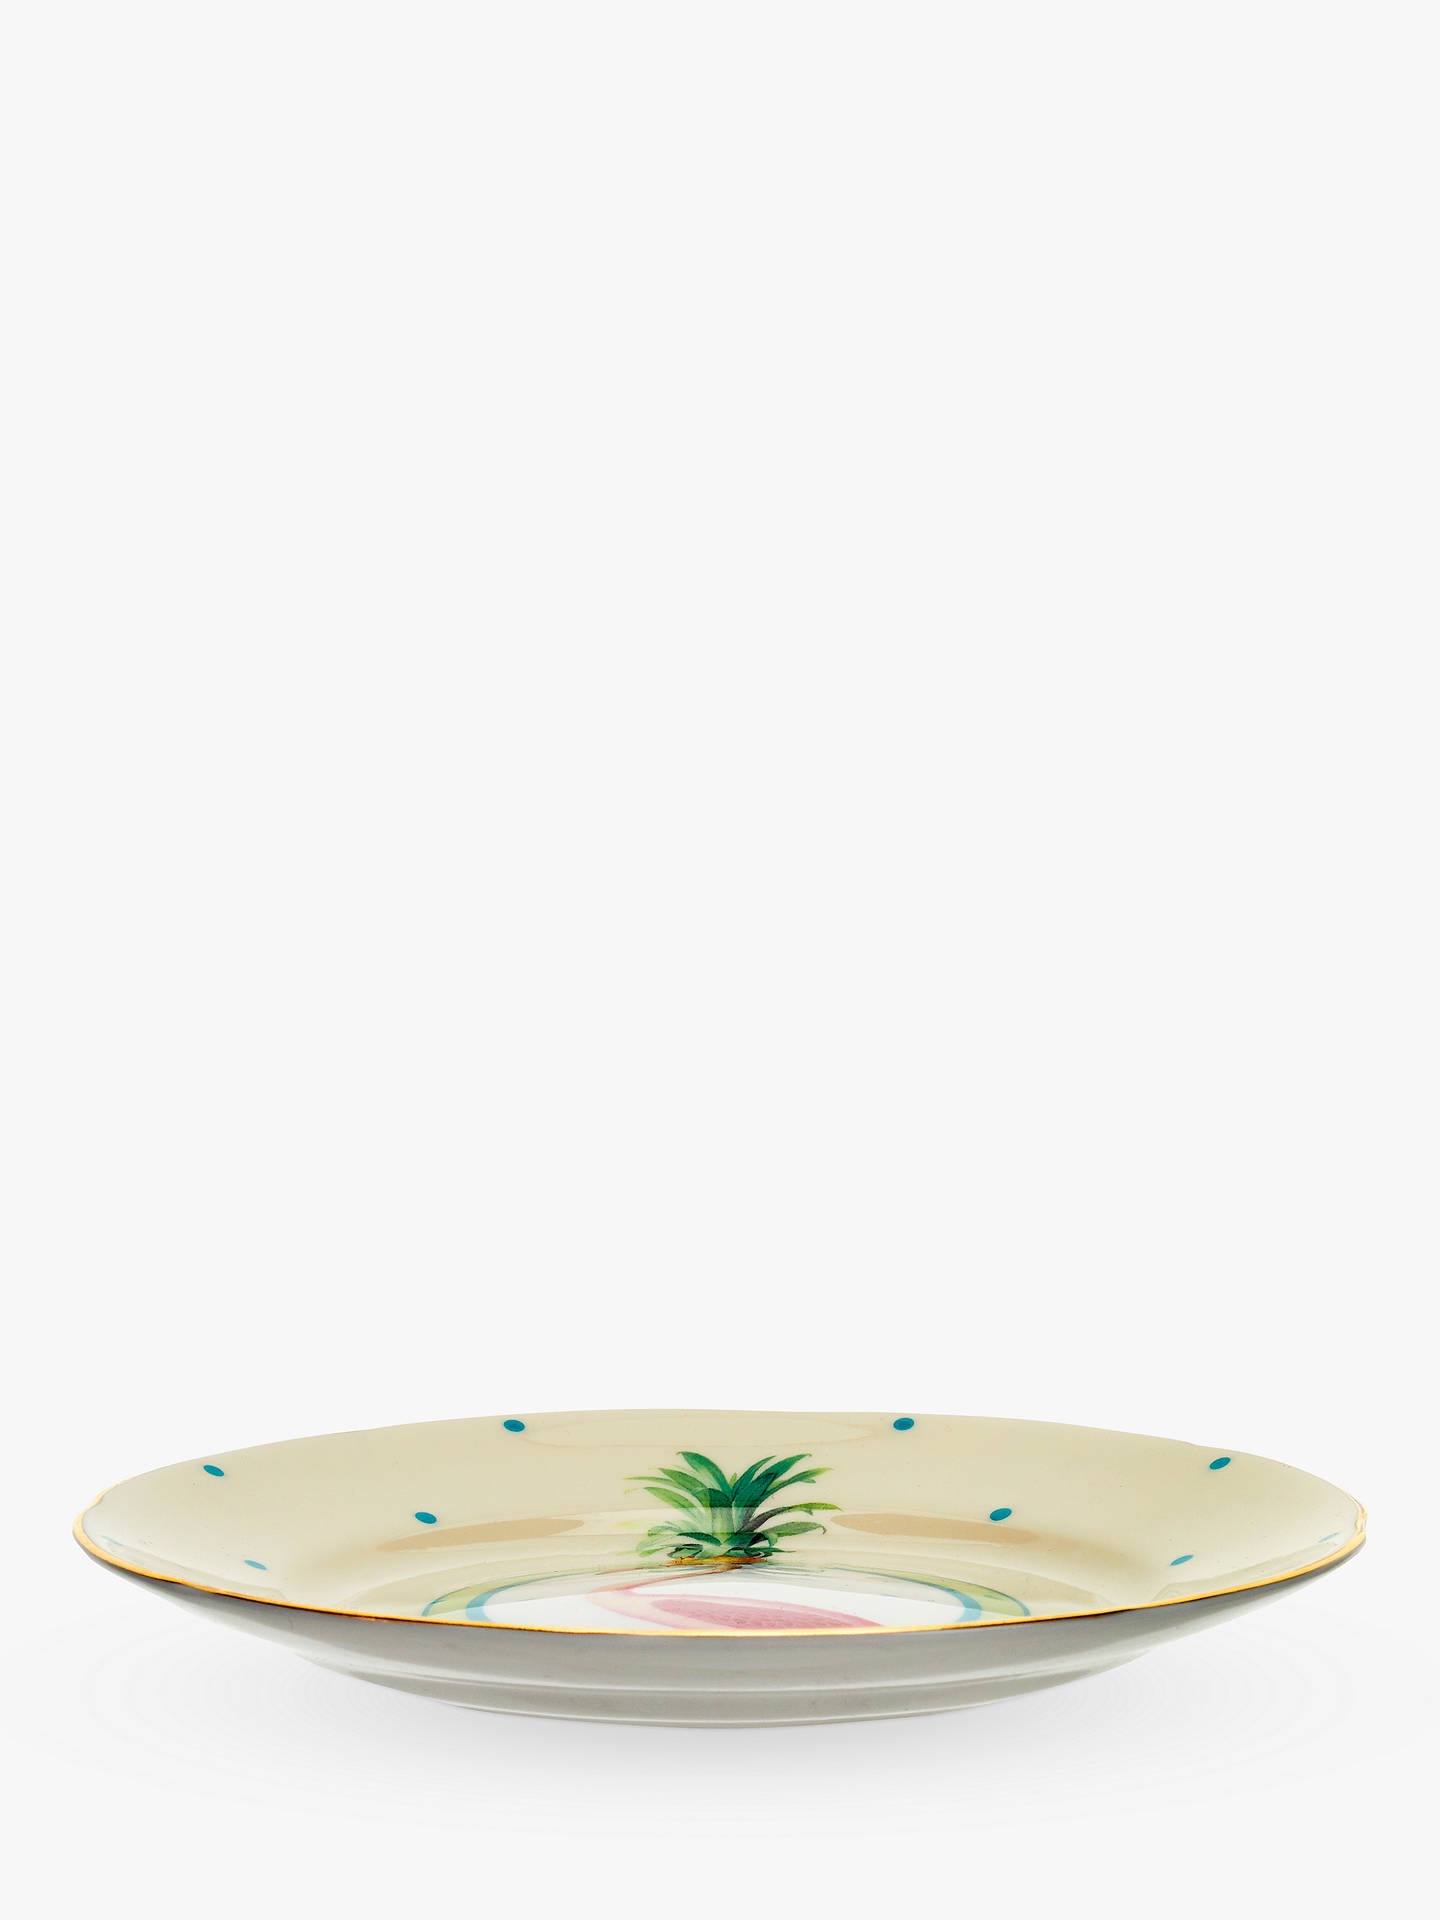 BuyYvonne Ellen Pineapple Flamingo Cake Plate, Multi, Dia.16cm Online at johnlewis.com